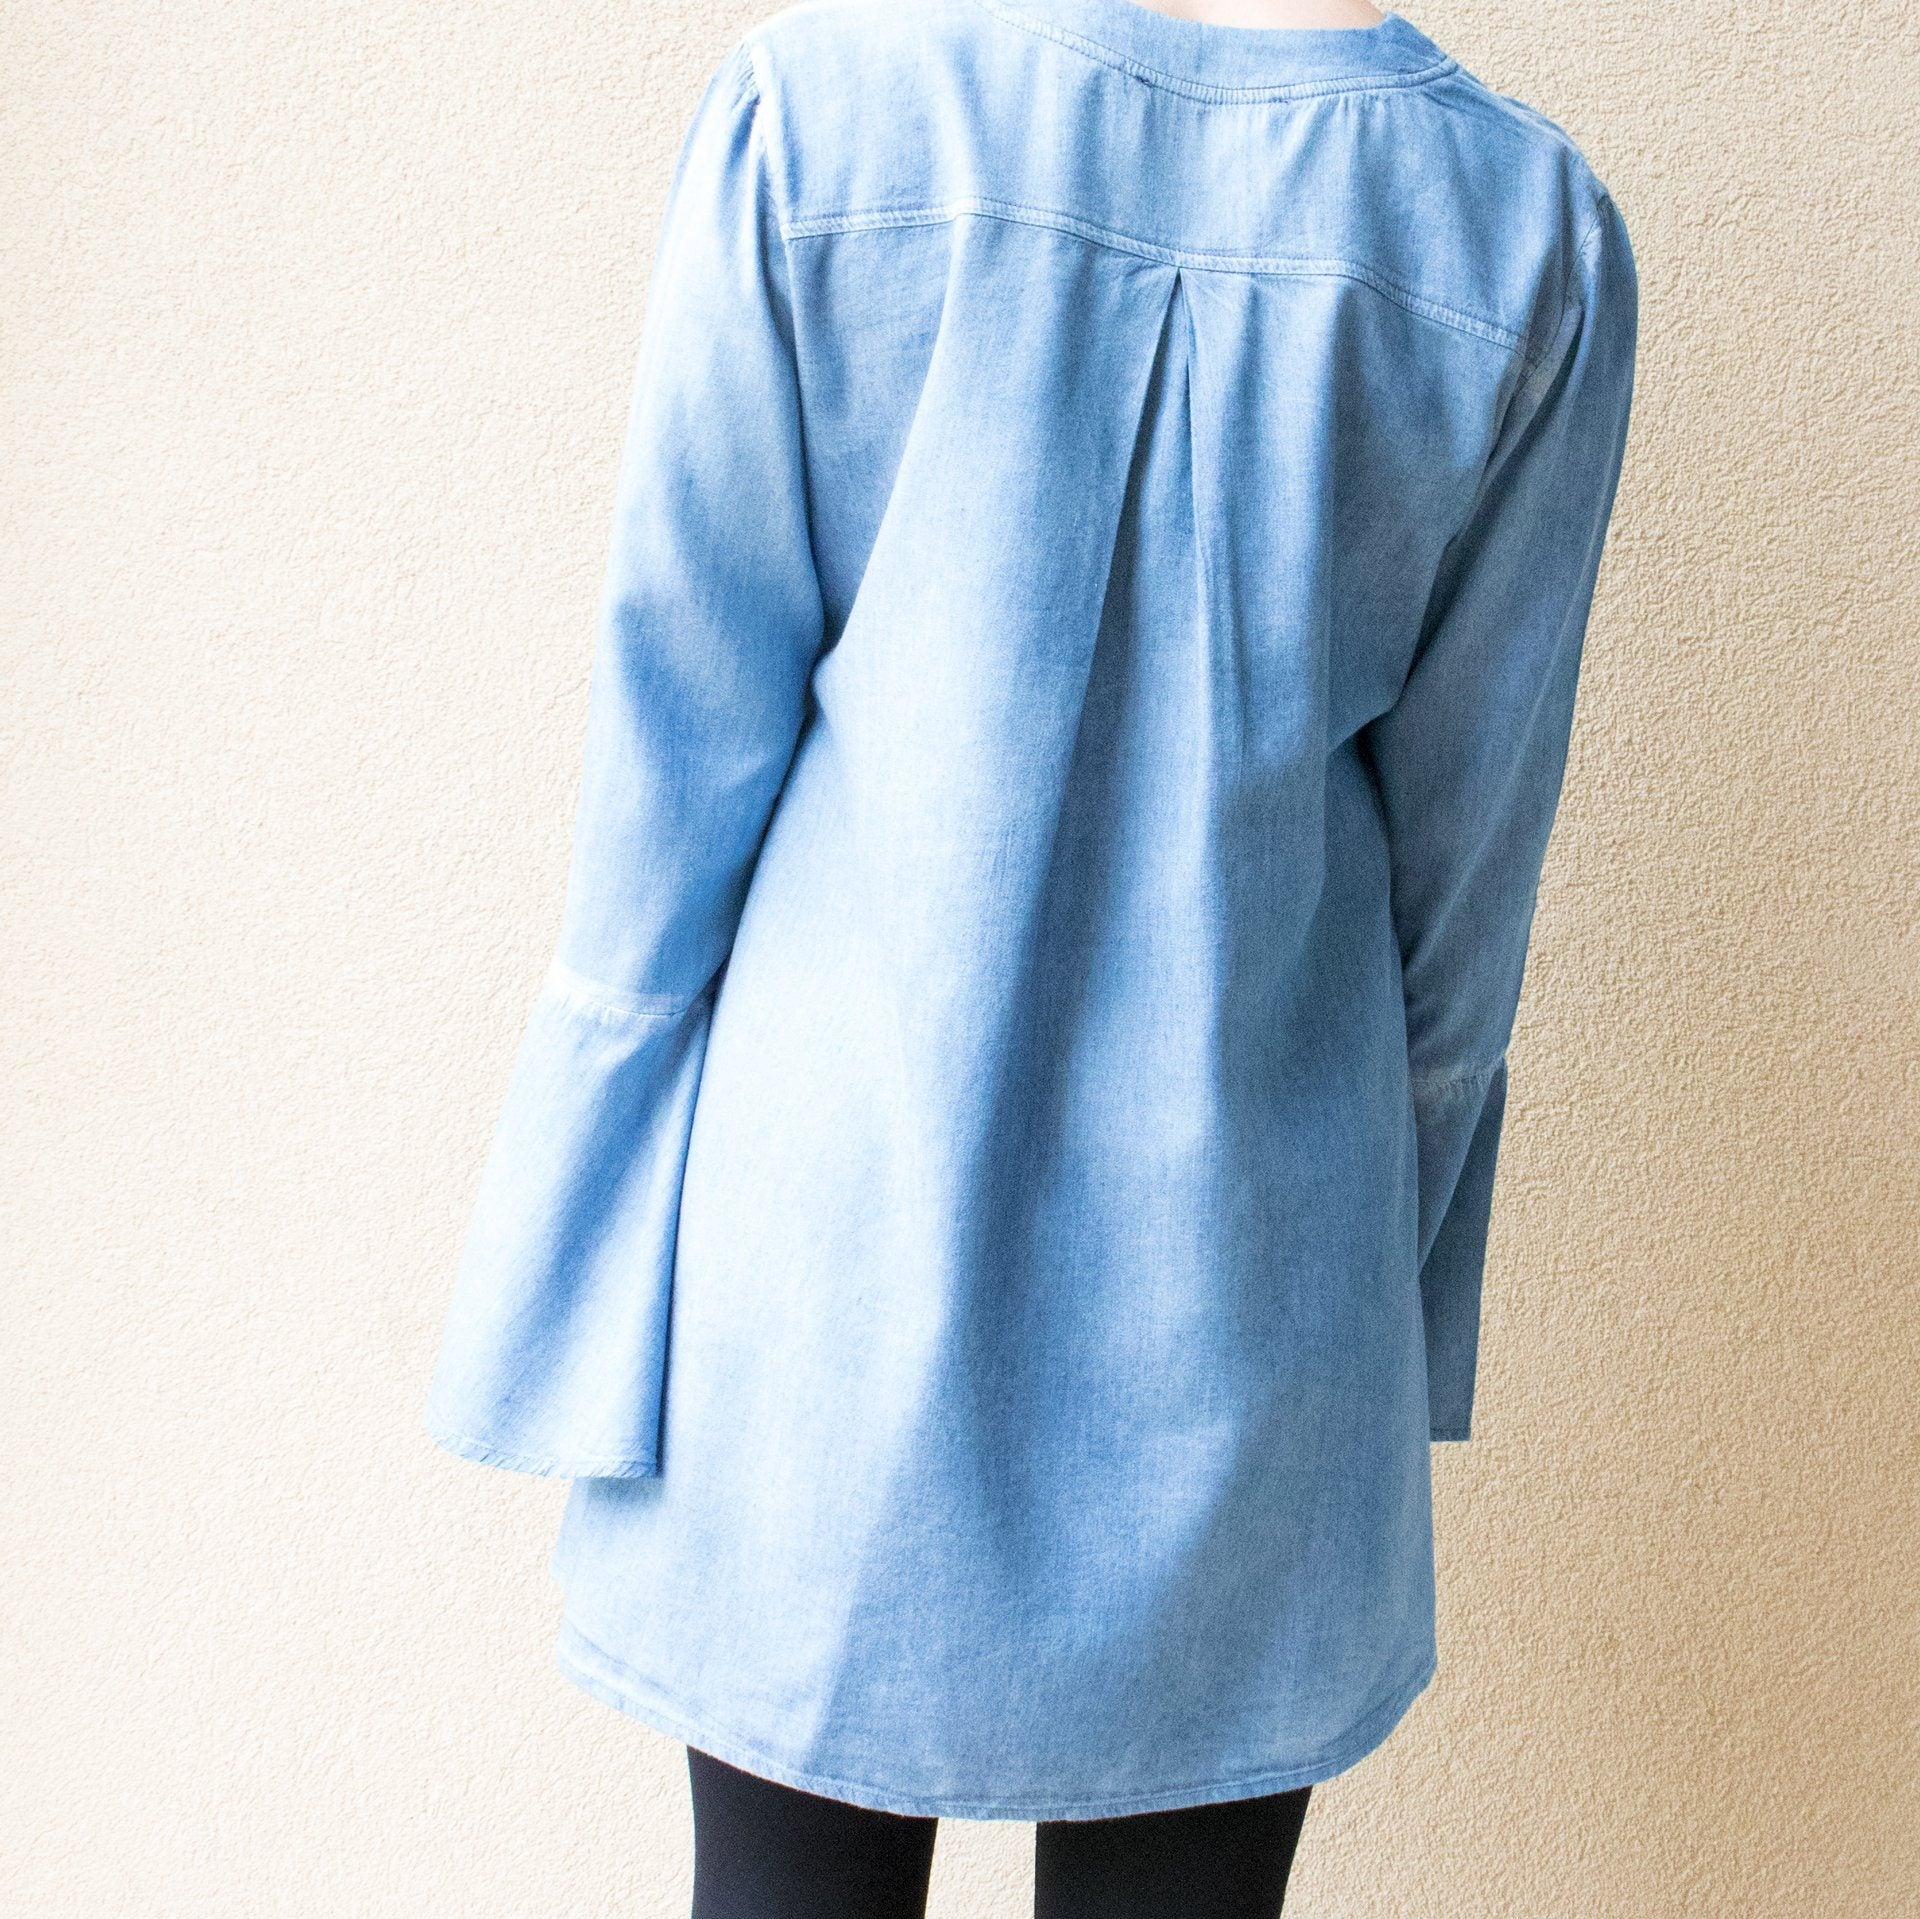 Lace Up Chambray Tunic Top with Bell Sleeves - Arlo and Arrows